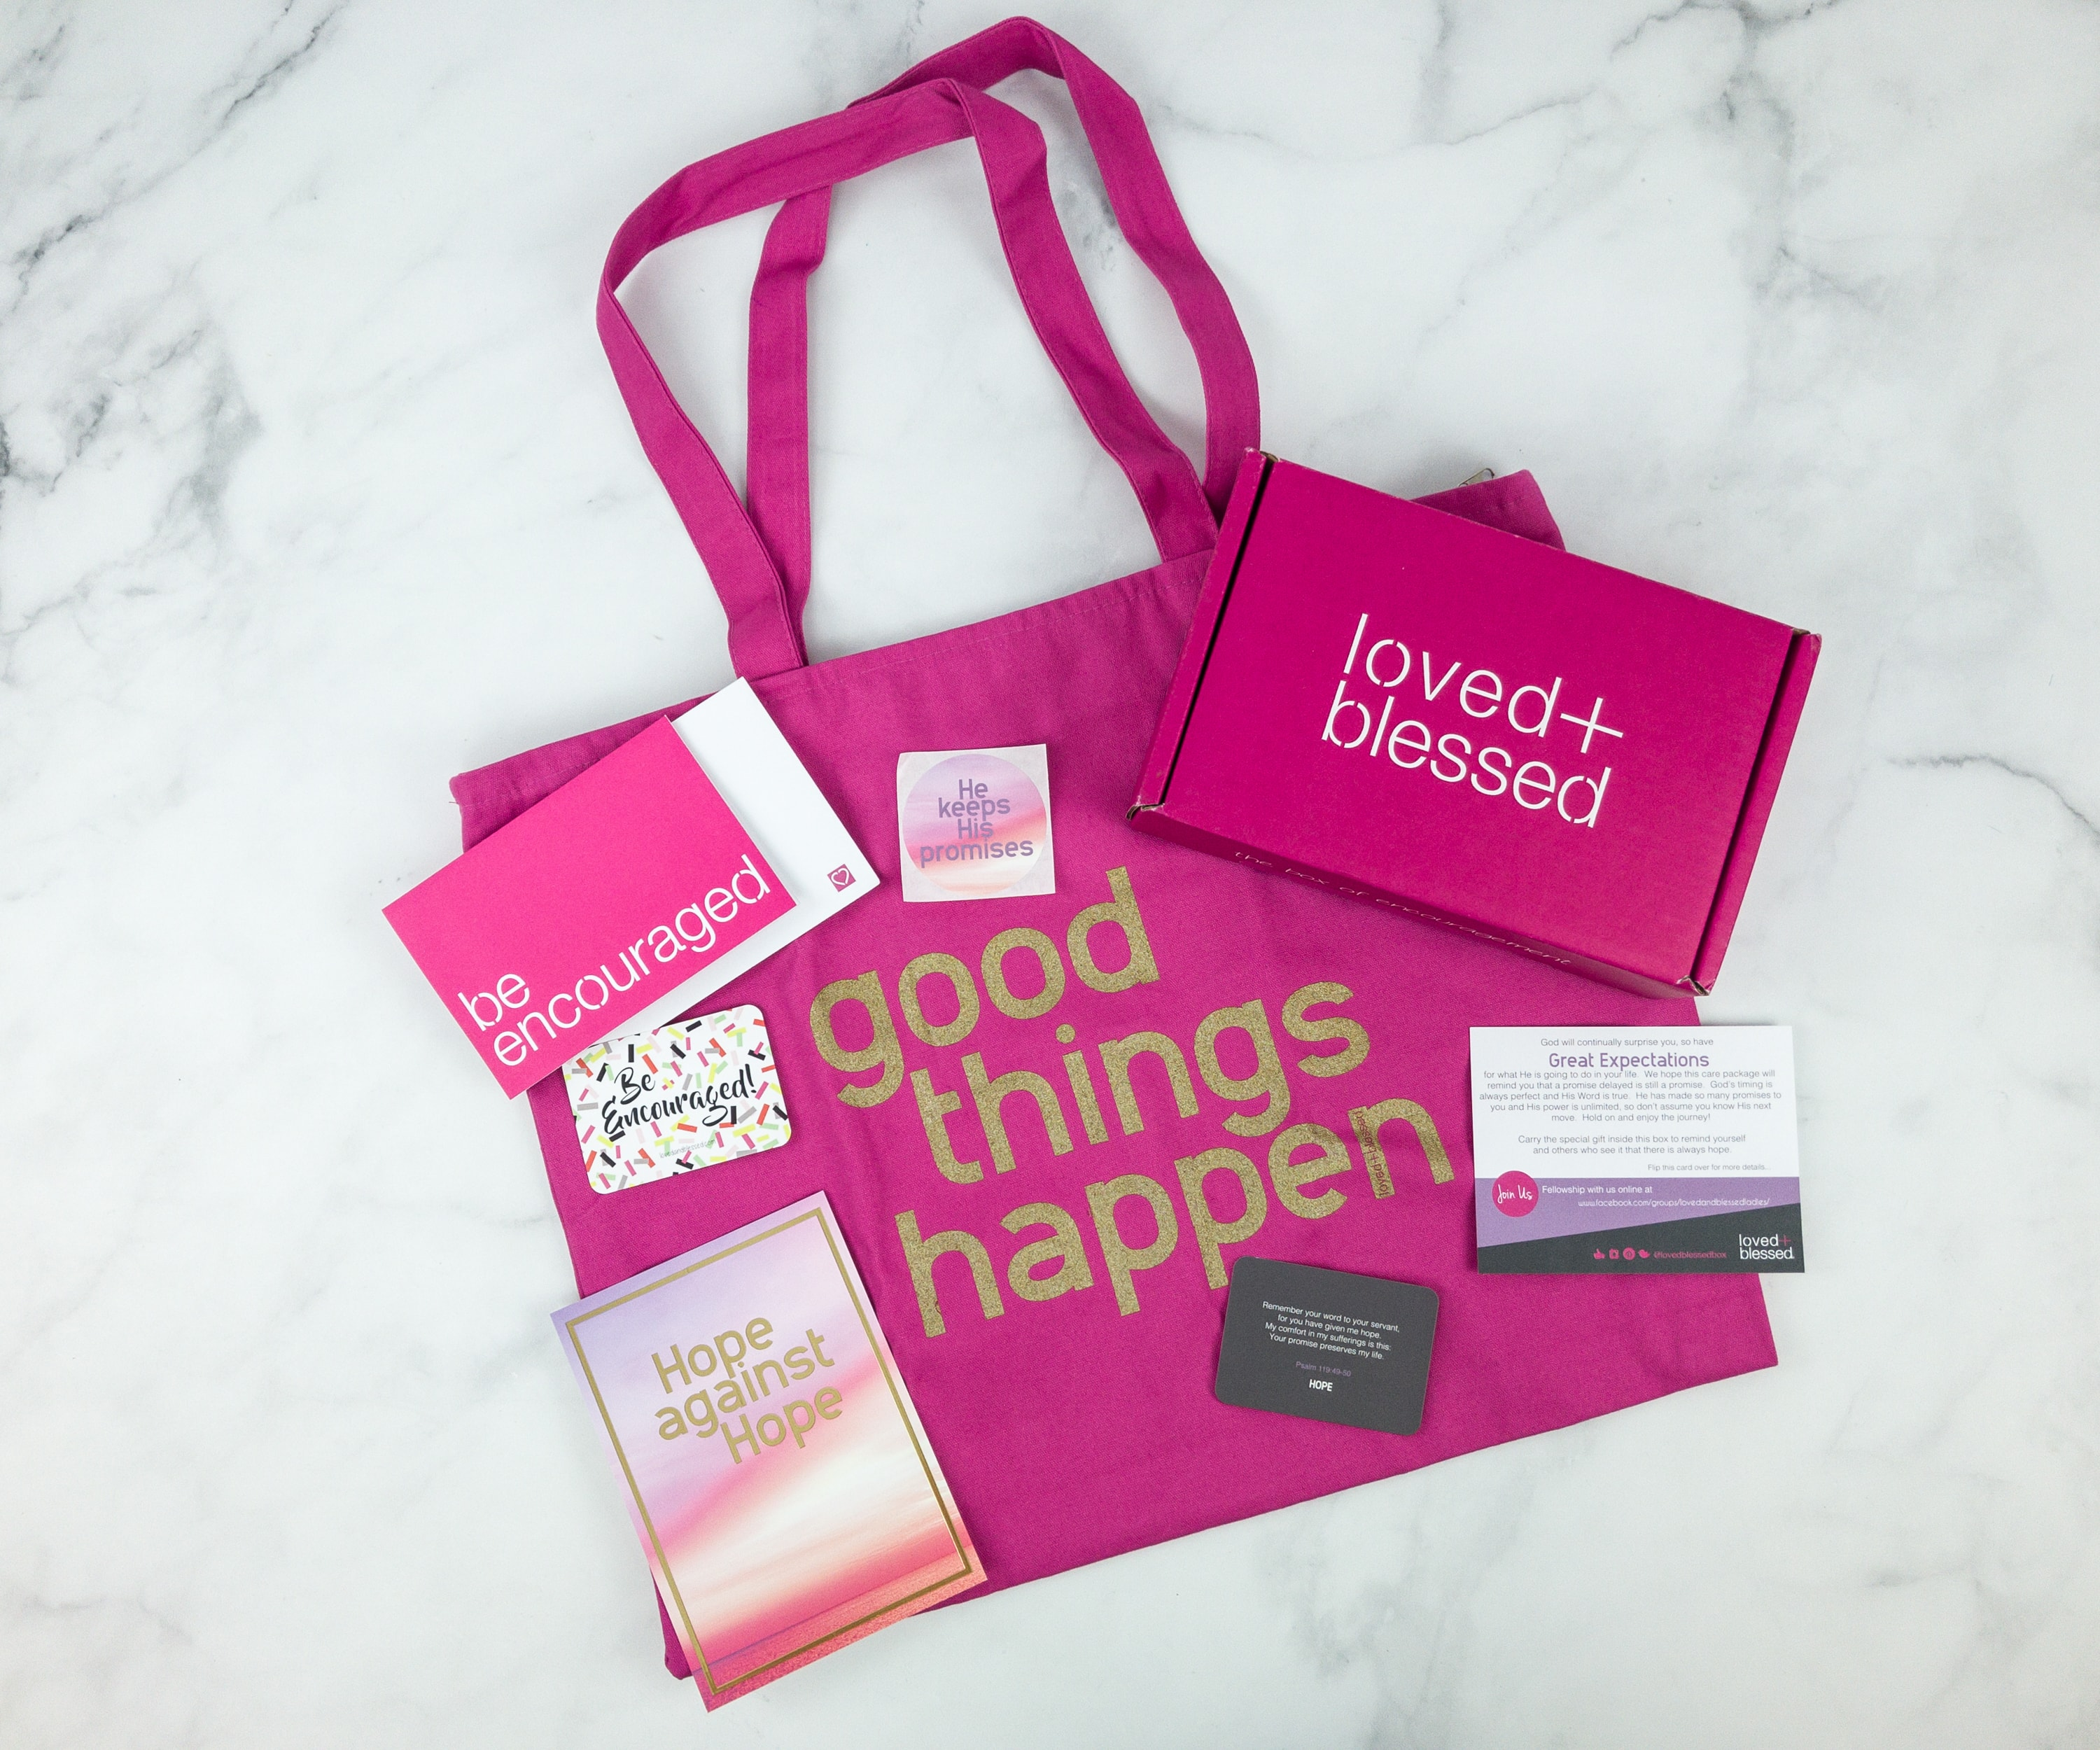 Loved+Blessed February 2019 Subscription Box Review + Coupon